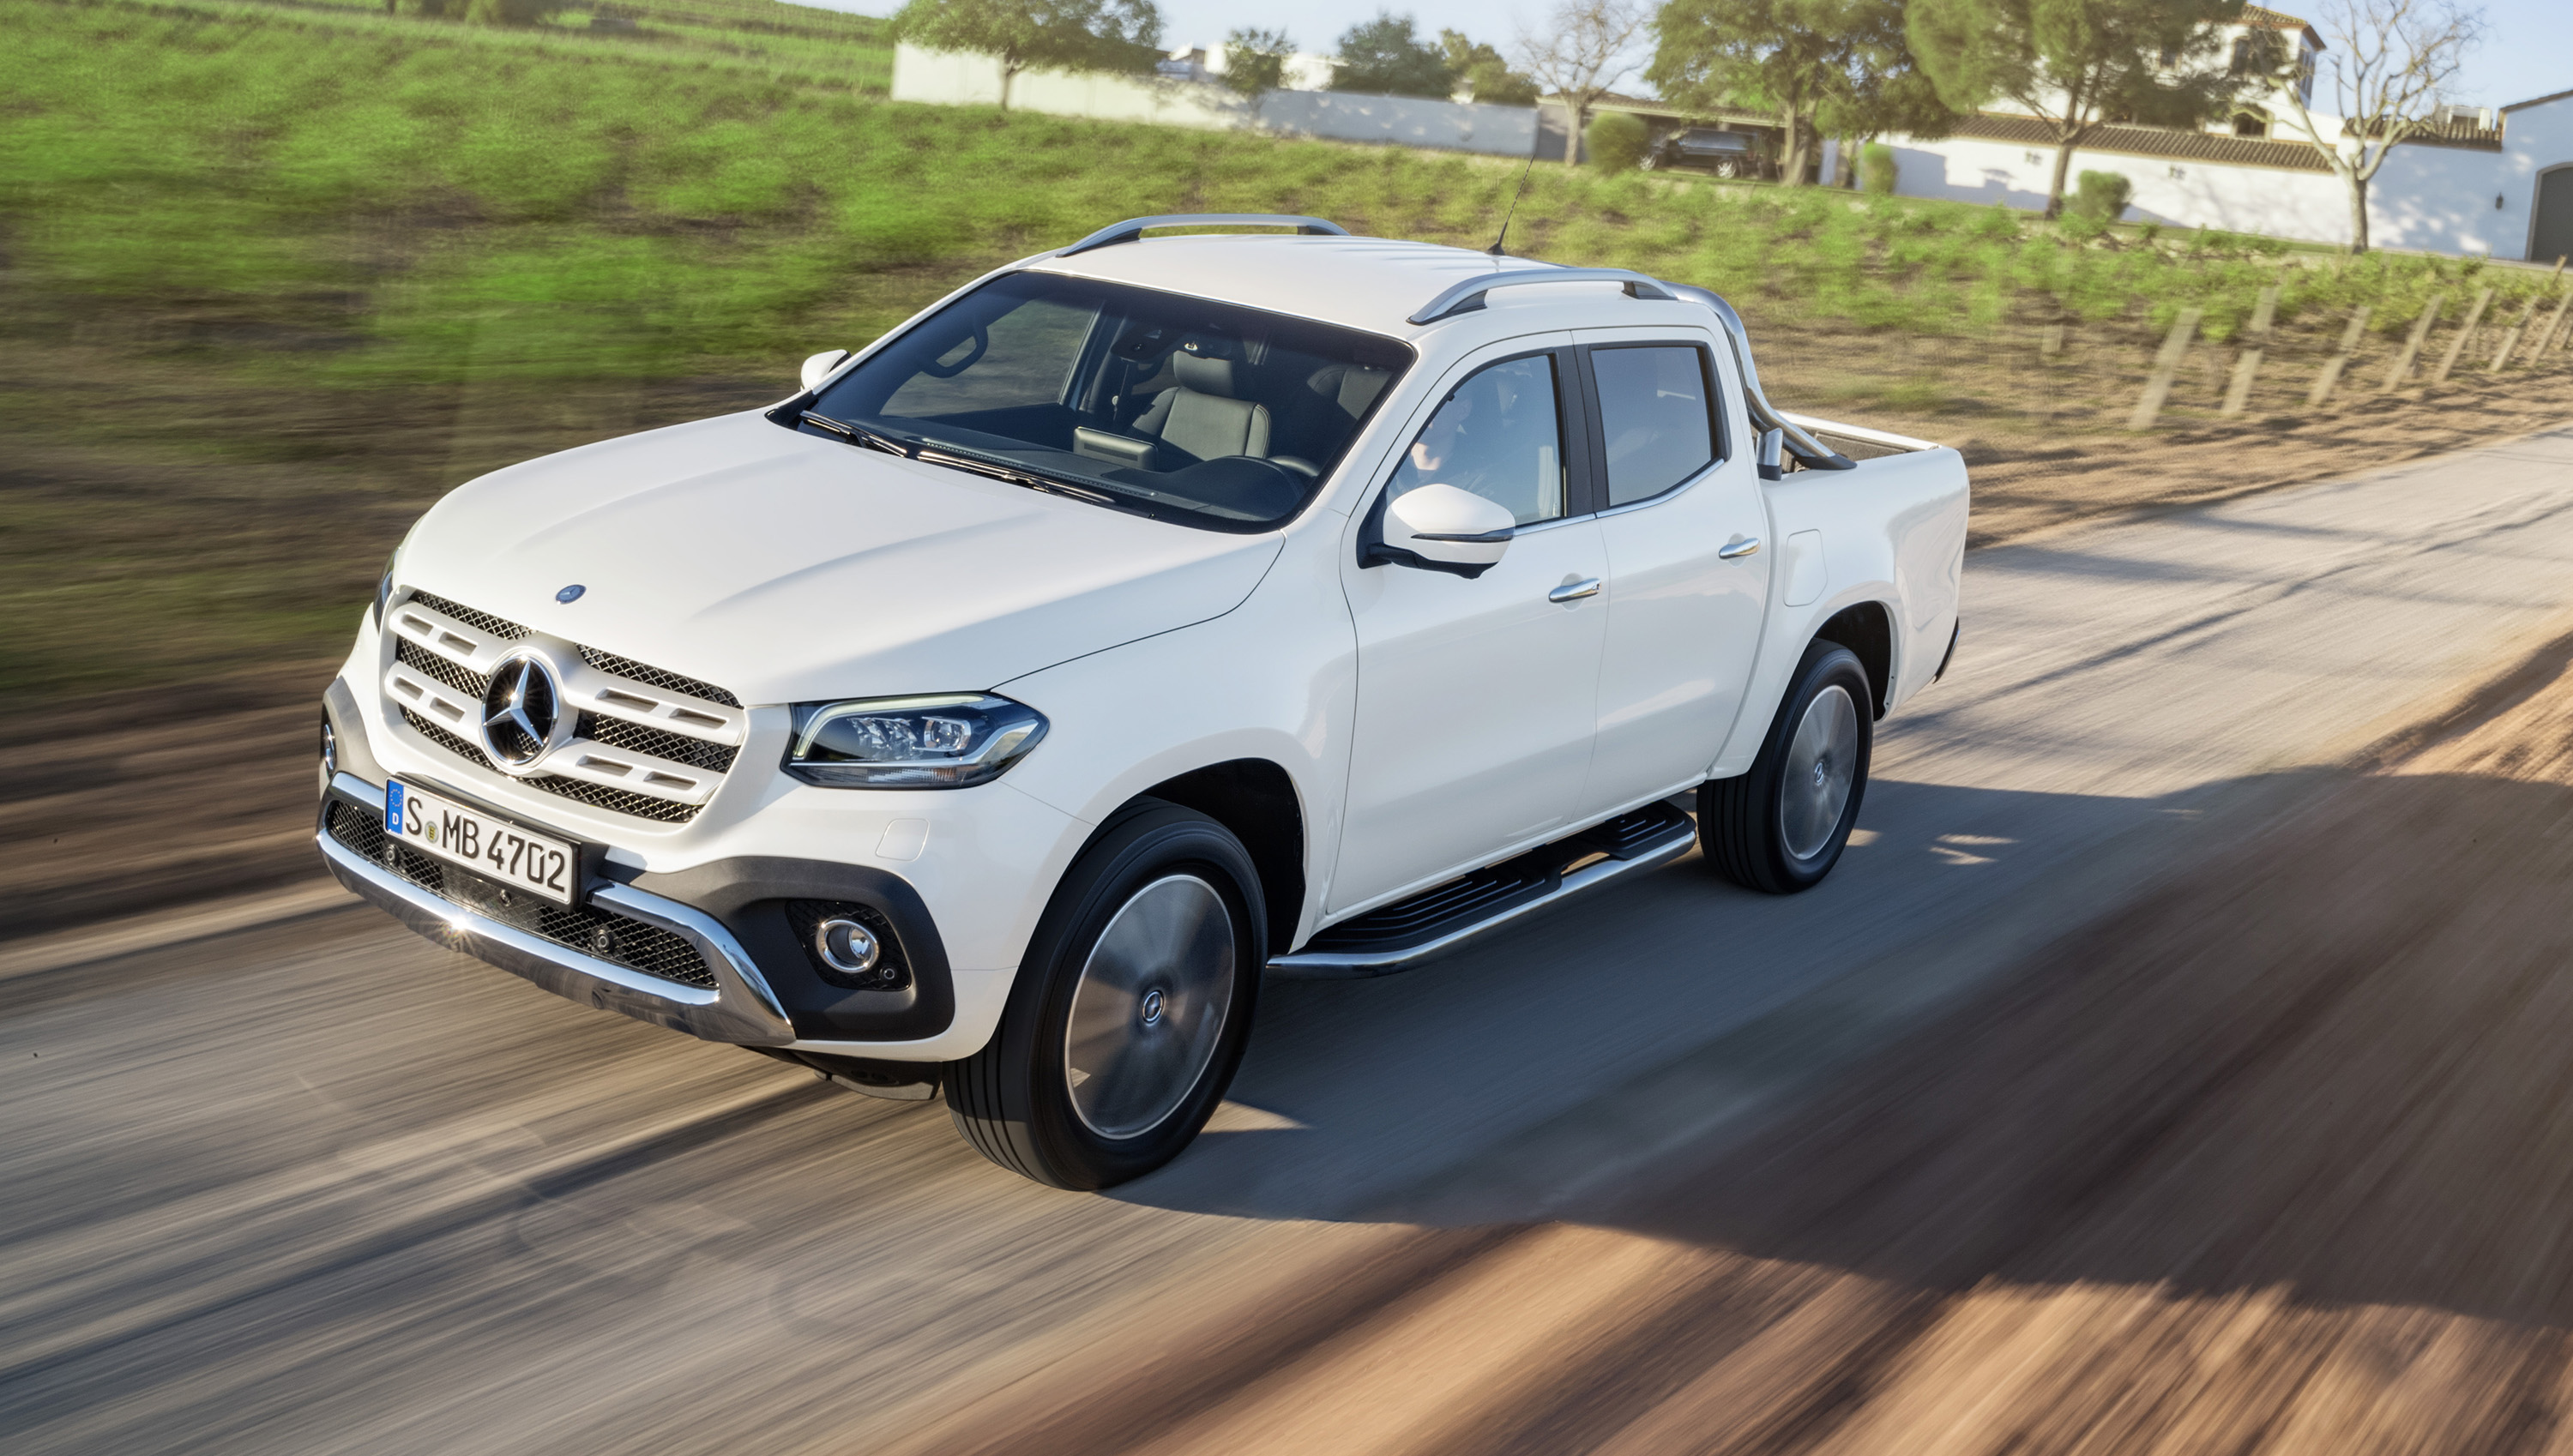 Mb X? S? 2018 Mercedes Benz X Class Ride Along Review Caradvice